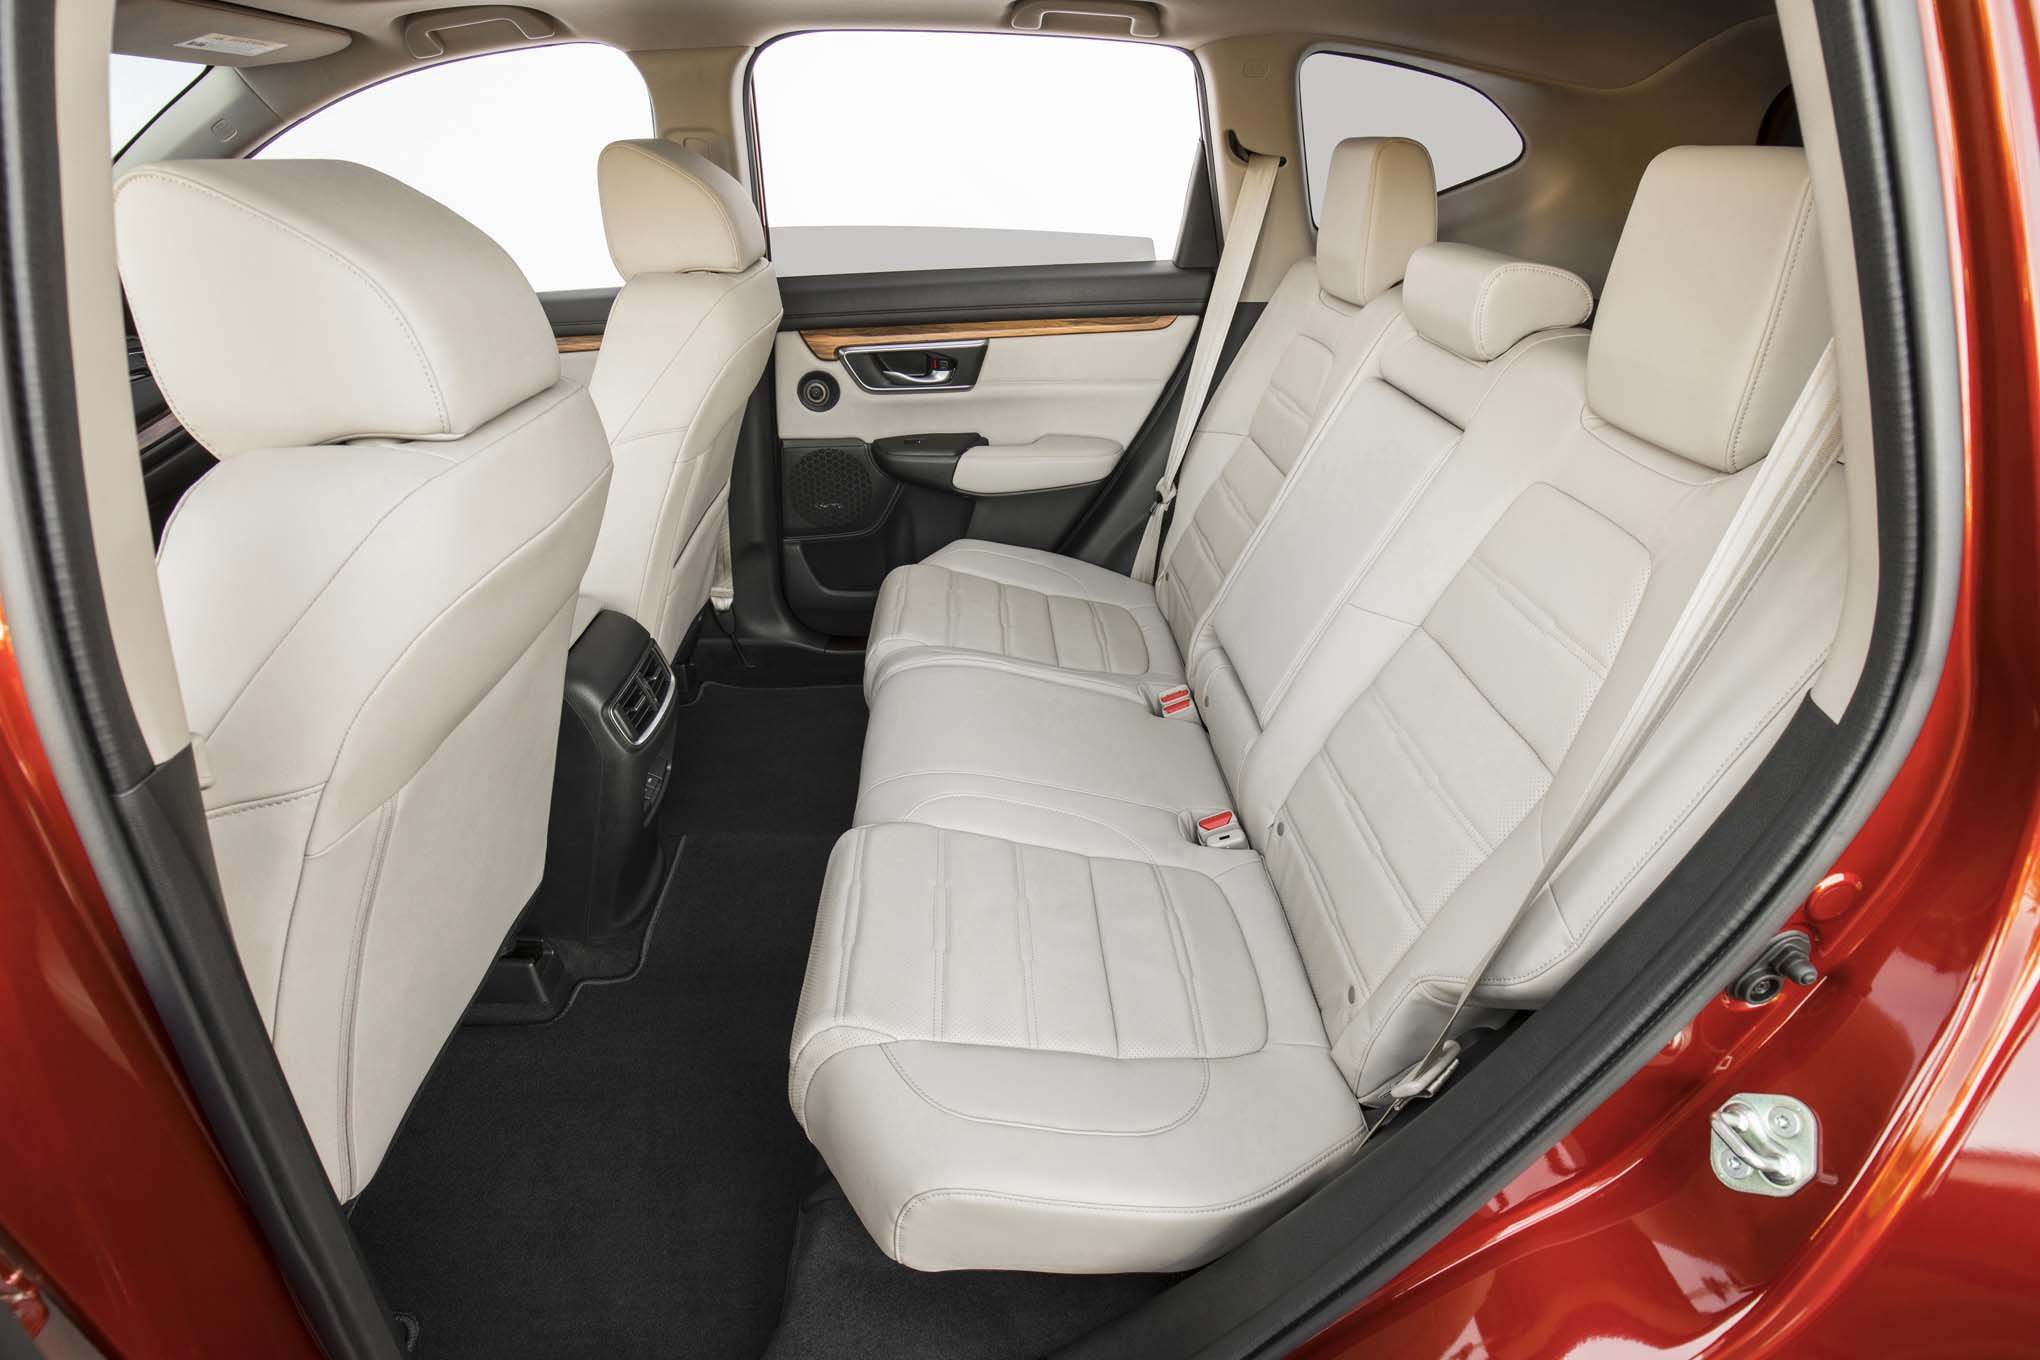 2017 Honda CR V rear interior seats 1